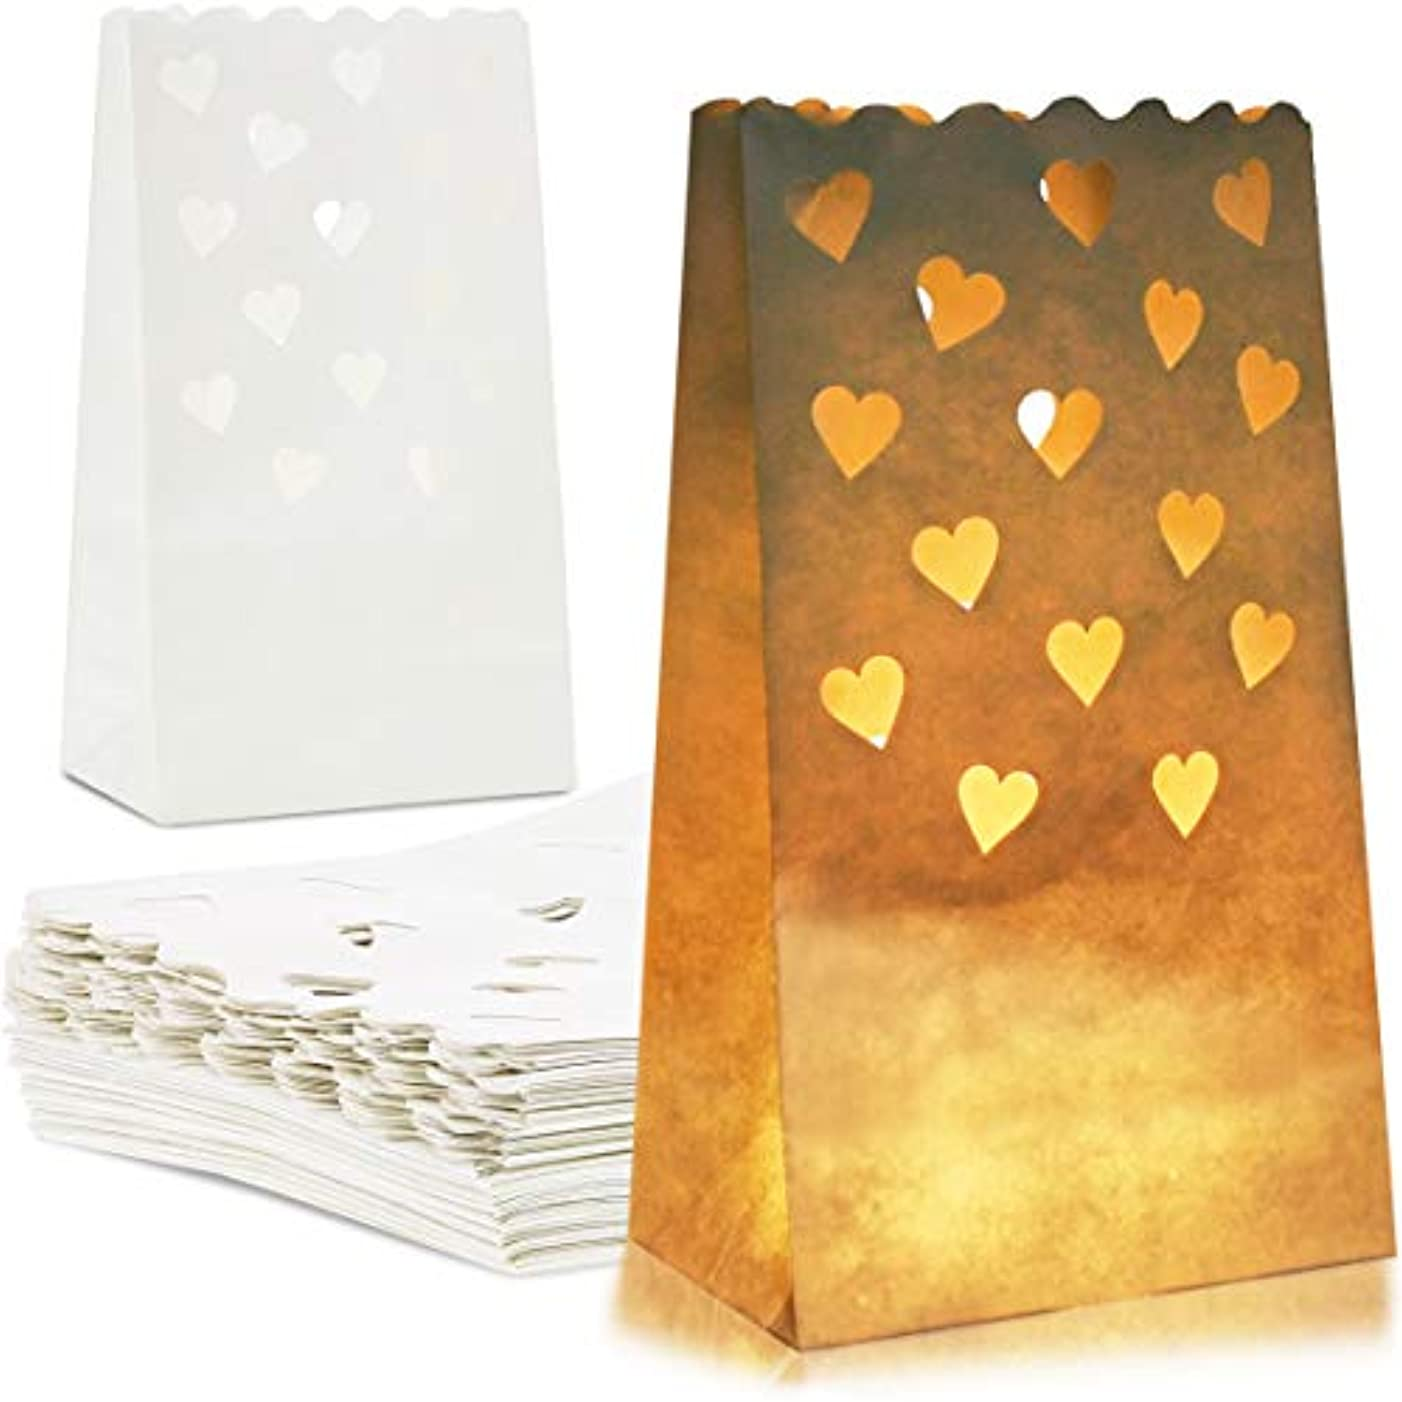 Juvale 24-Pack White Tea Light Candle Luminary Bags for Weddings, Party Decoration, 10 x 6 x 3.5 Inches